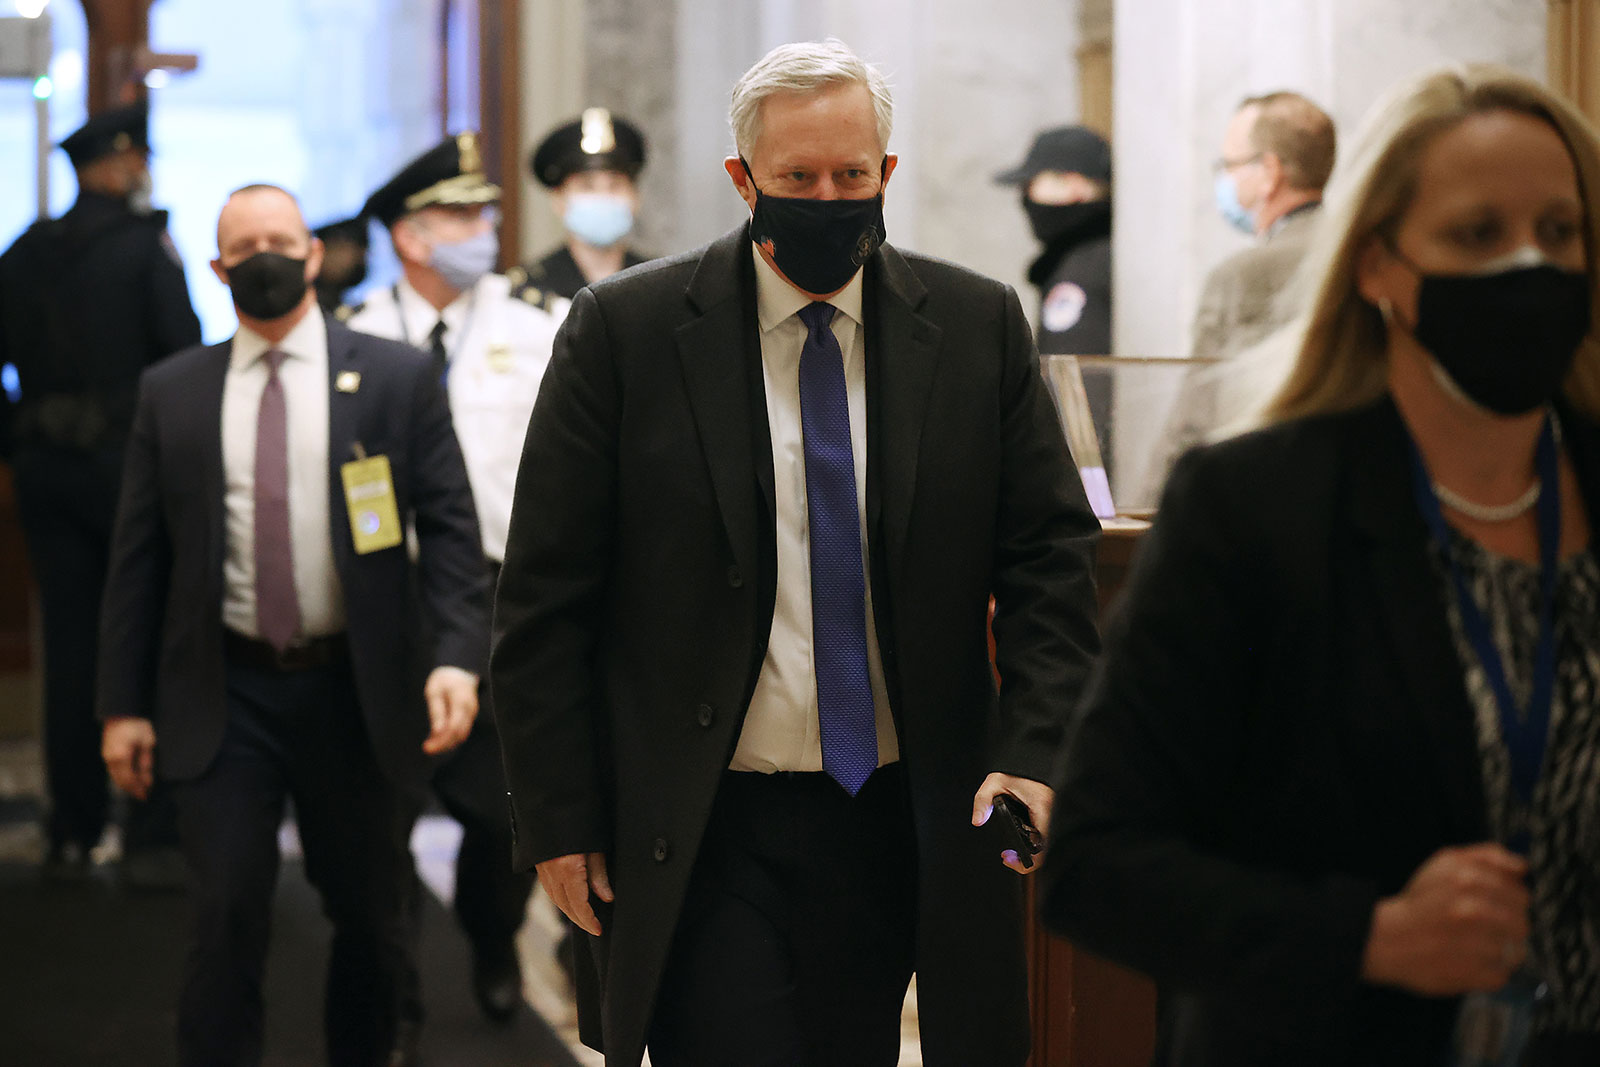 Former White House chief of staff Mark Meadows arrives on Capitol Hill on February 9.